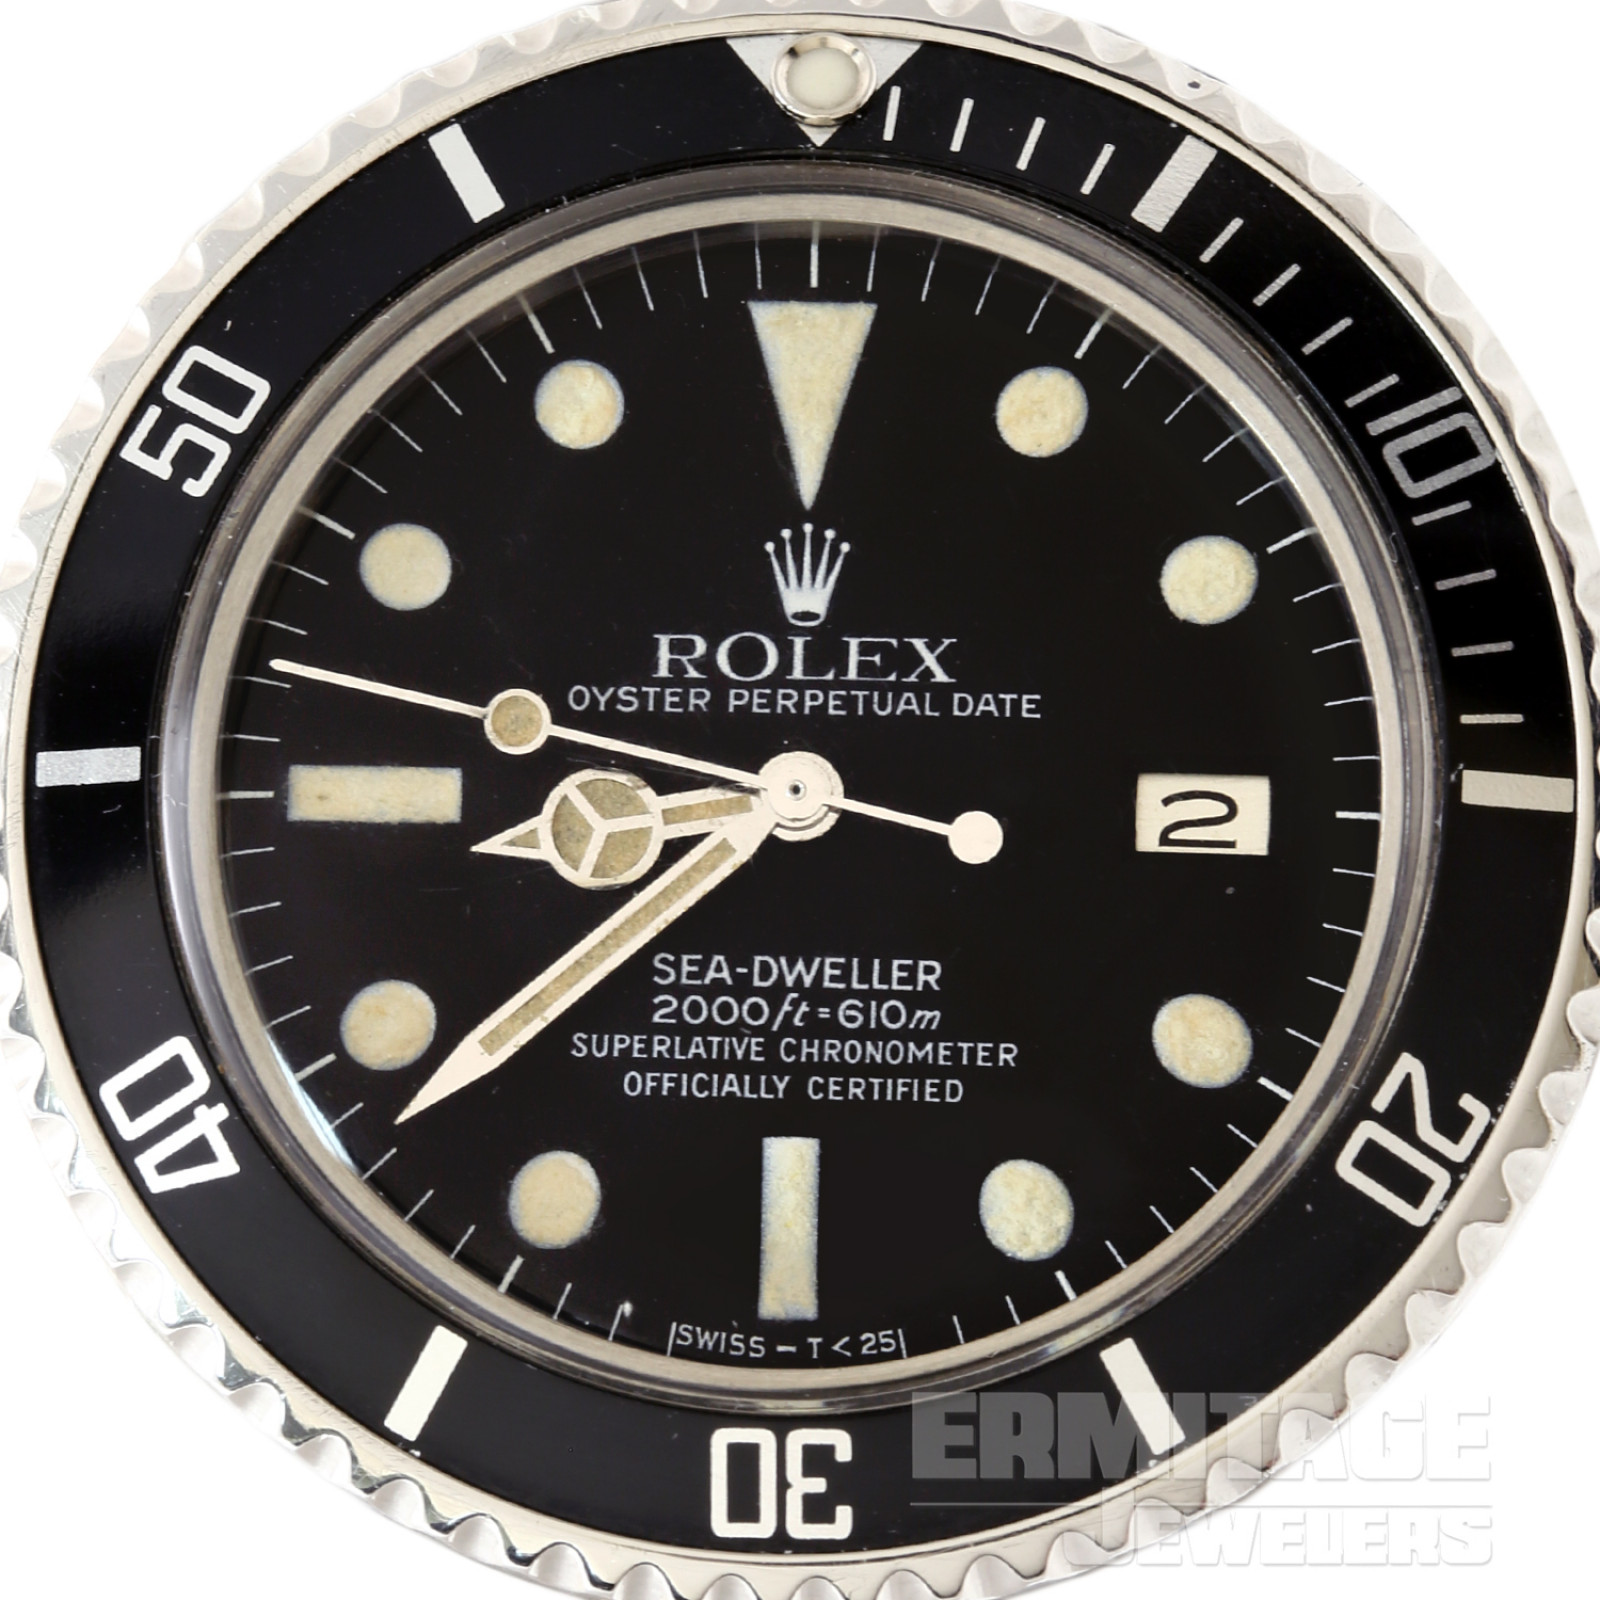 Double Red Rolex Sea-Dweller Mark IV